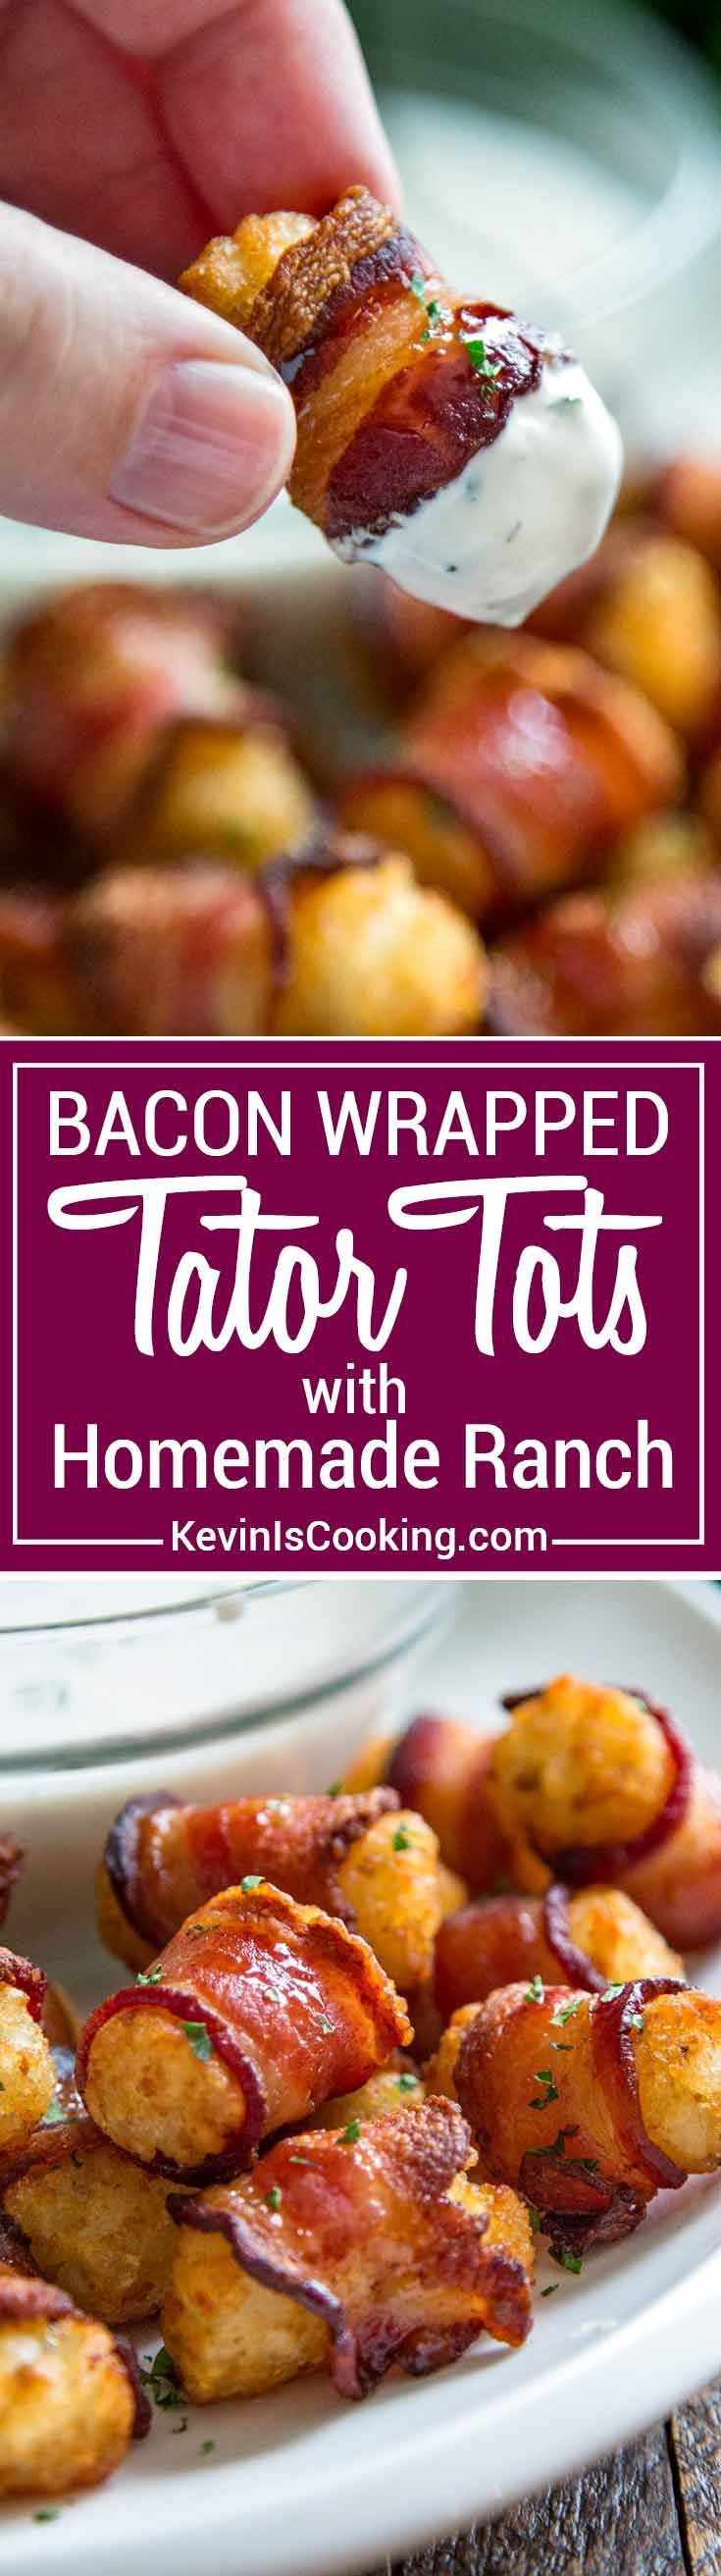 Bacon Wrapped Tots, a classic flavor combo potato and bacon. Now wrap bacon around each tot and bake! Add some fresh, homemade ranch dressing to dip these crunchy nibbles in and you are set for any party or game day snack!